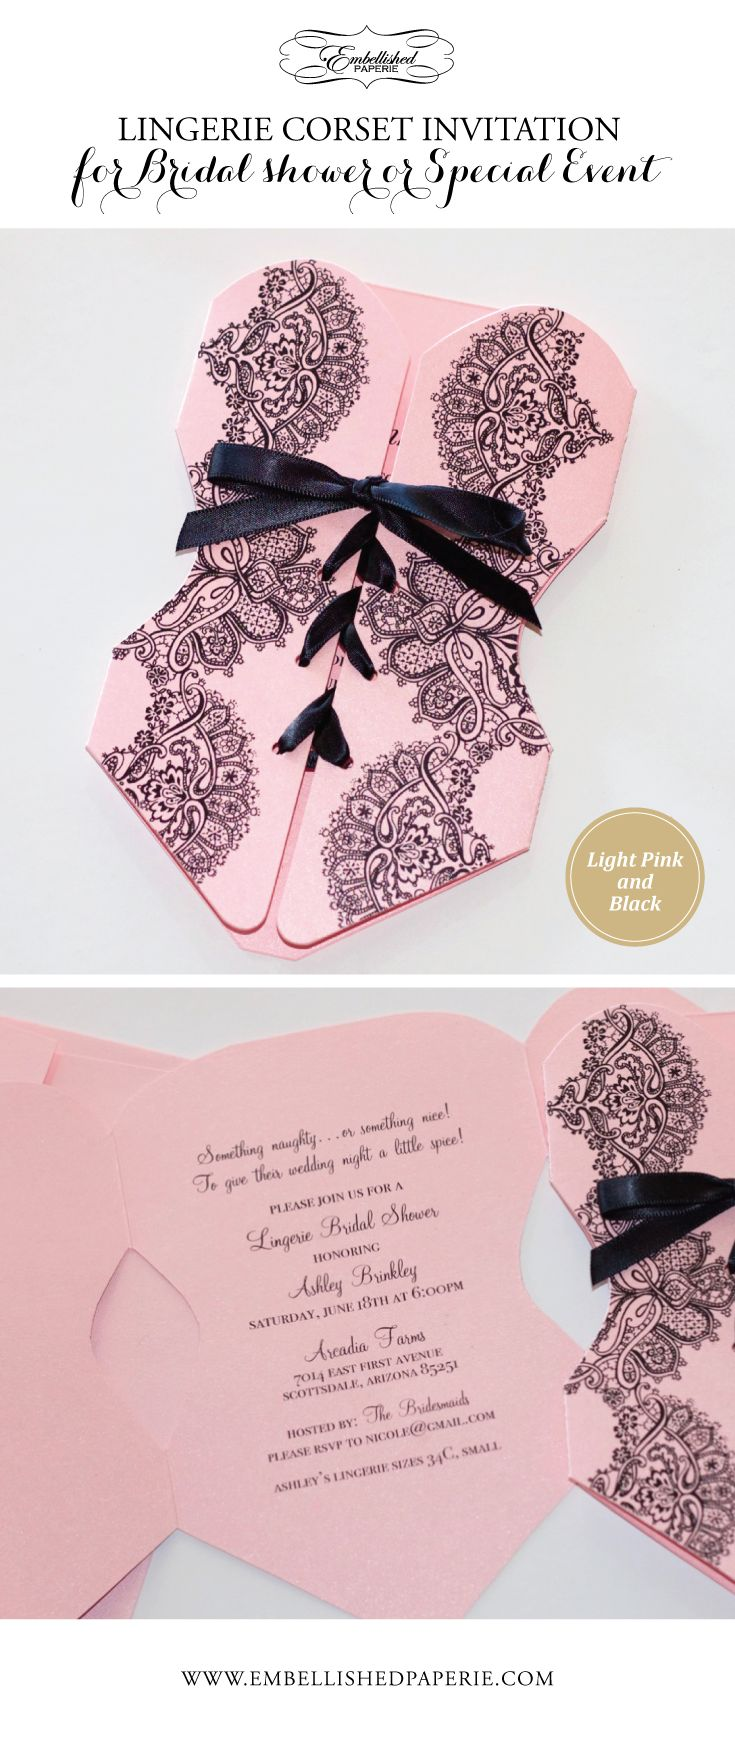 Corset Invitation for a Lingerie Bridal Shower - Light Pink metallic card stock and Black satin ribbon. Can also be used for a Bachelorette Party. www.embellishedpaperie.com